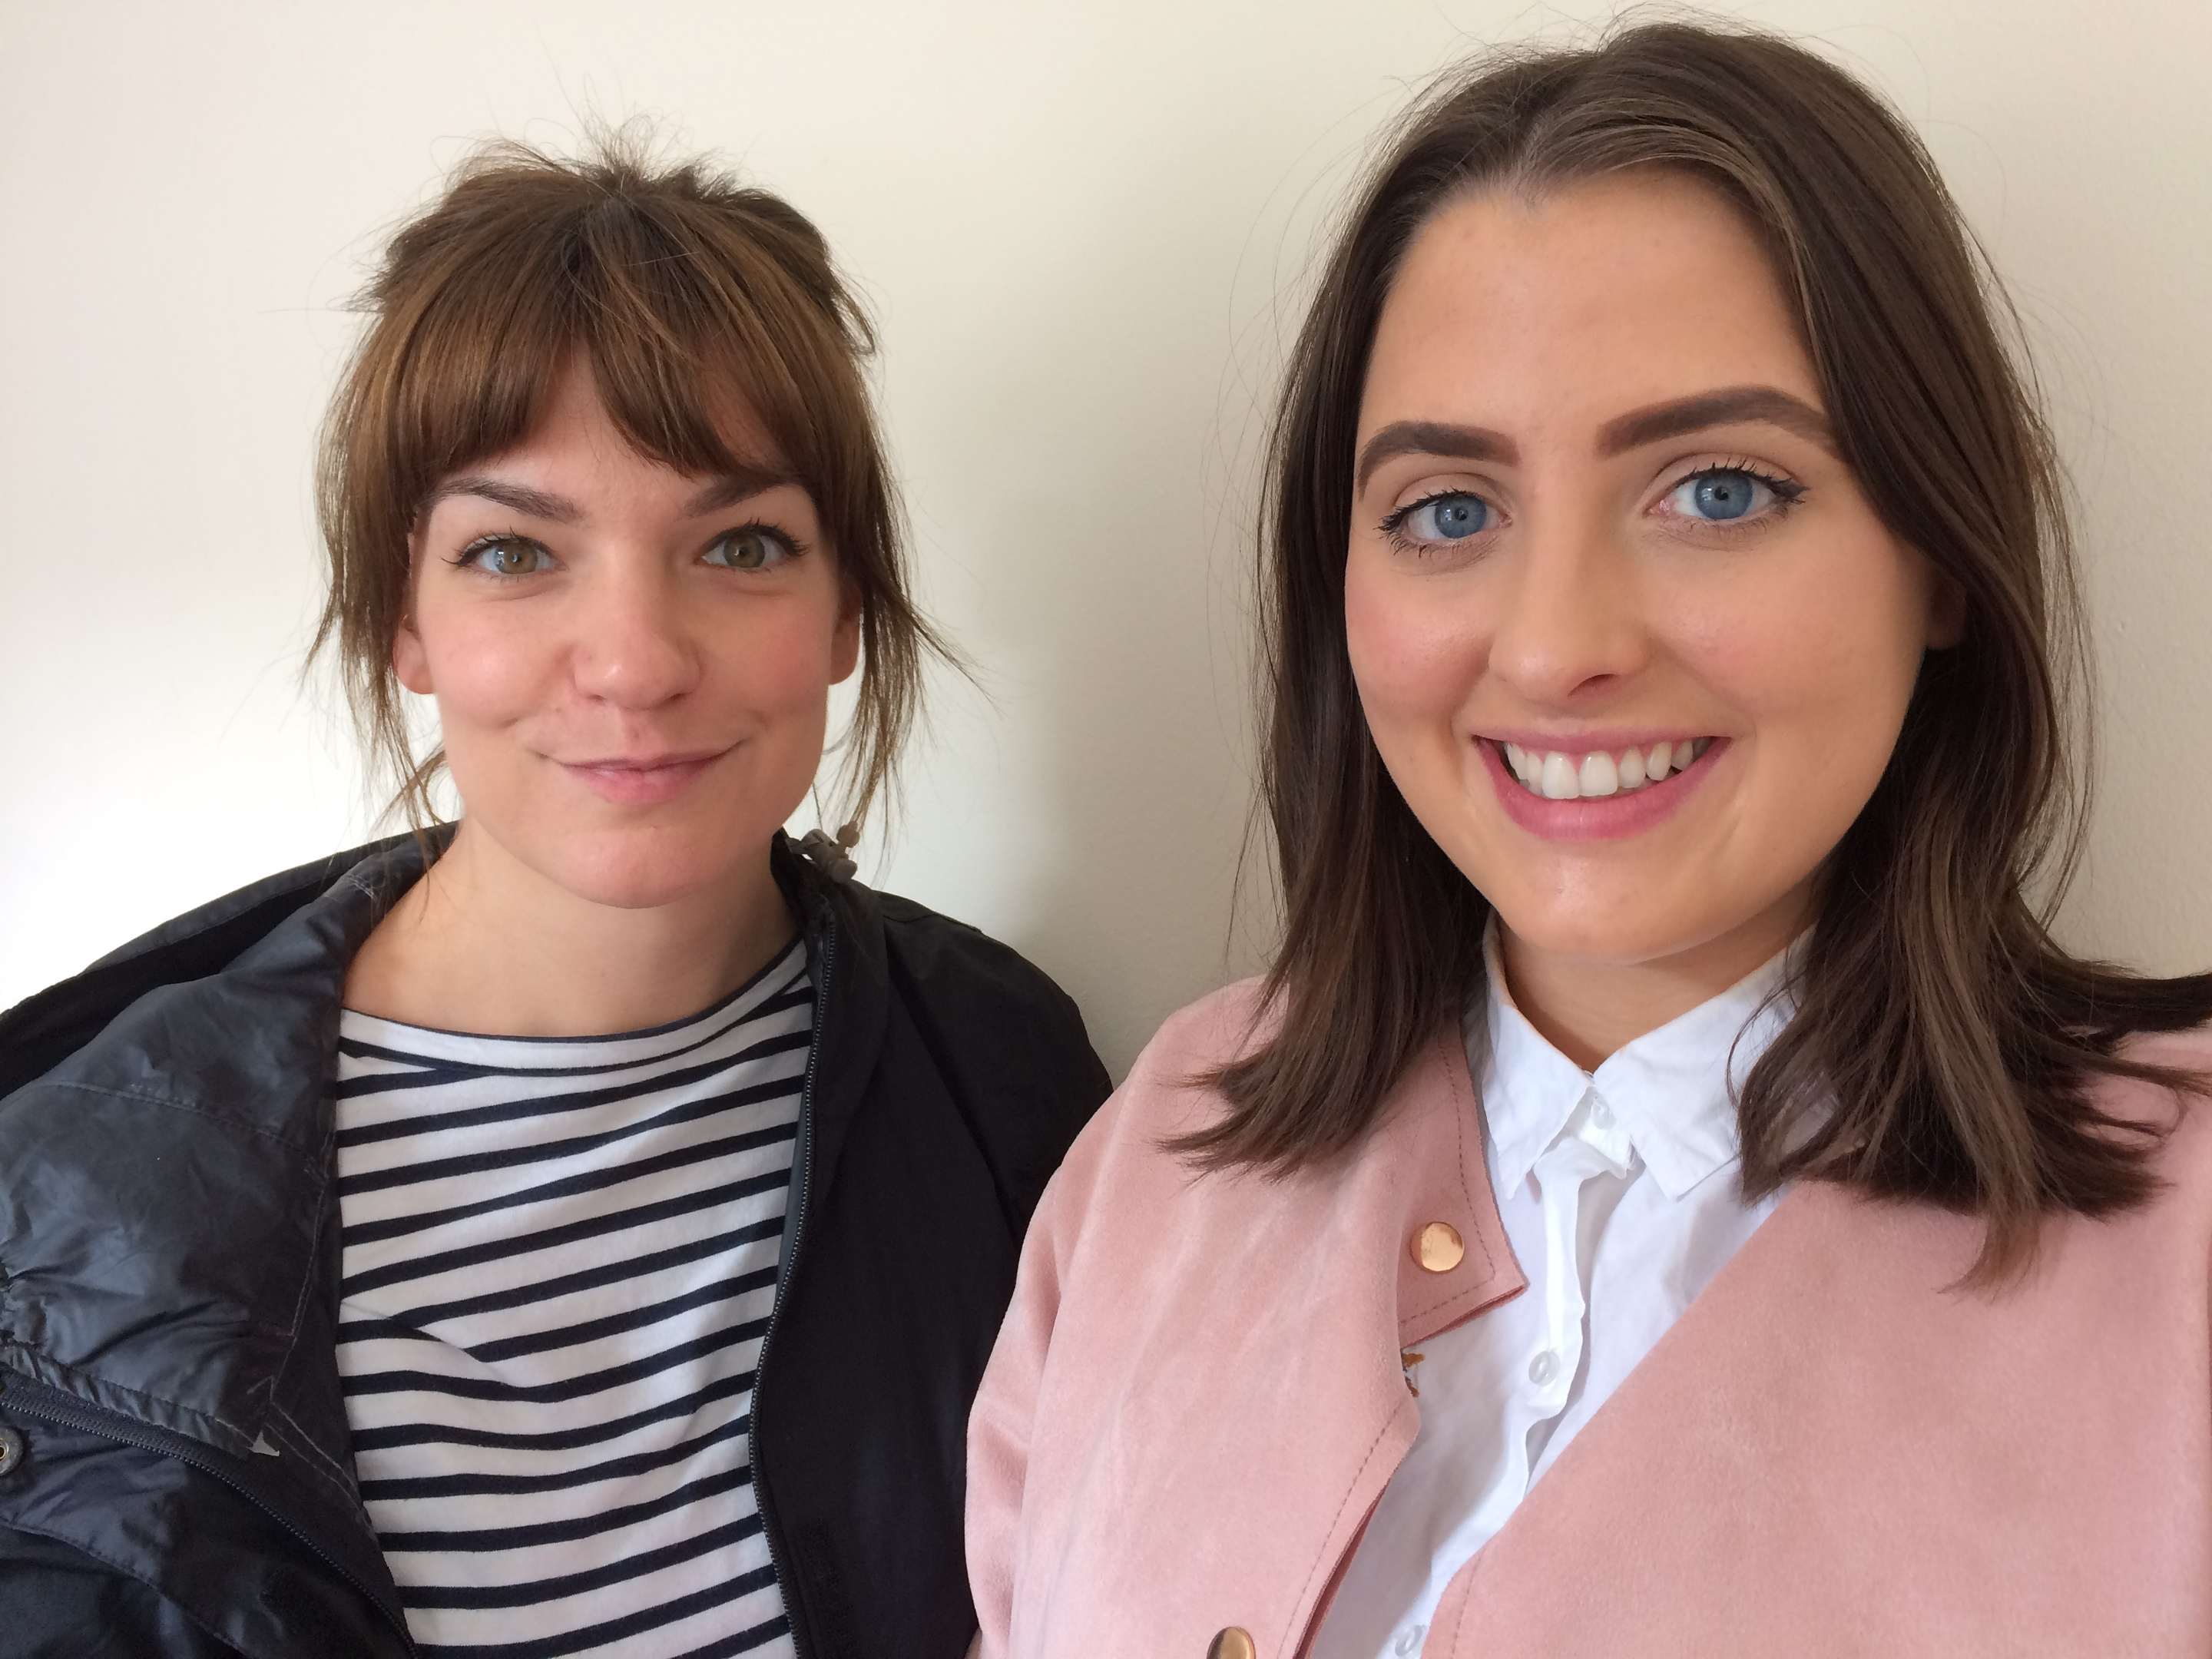 Charlotte Armstrong, producer, left, and Rebecca Cray, researcher, of Love Productions